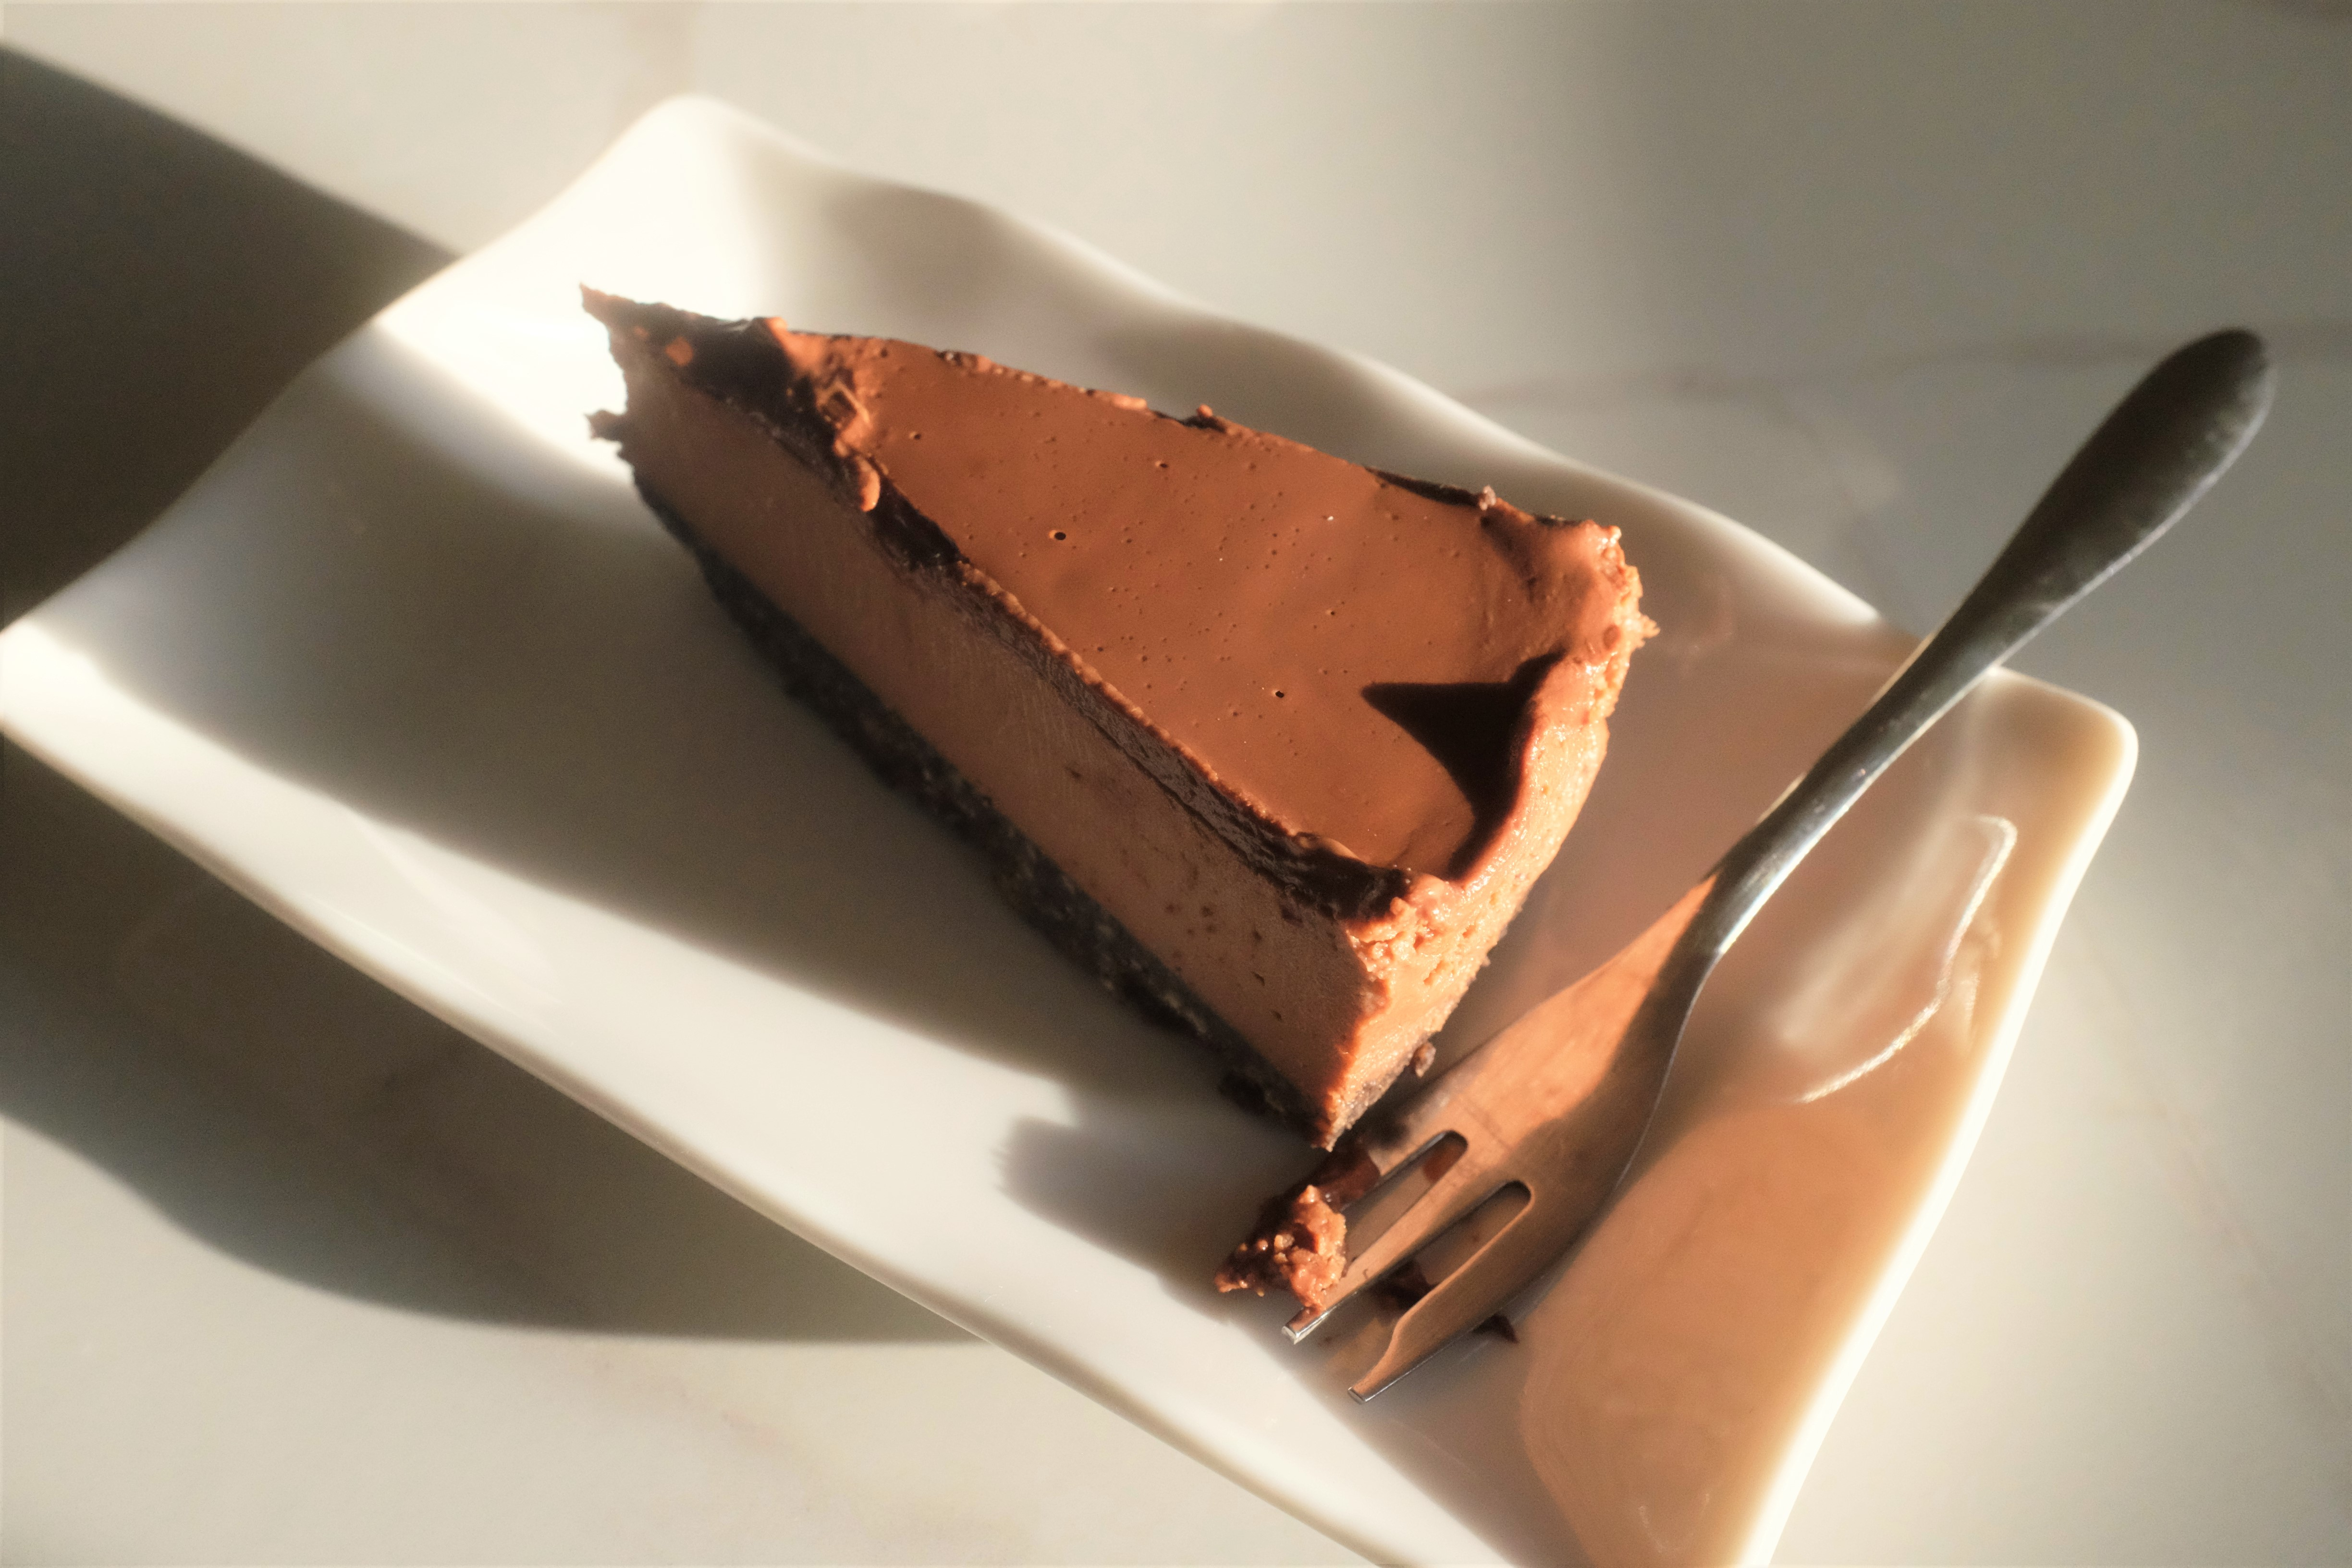 Chocolate cheesecake slice